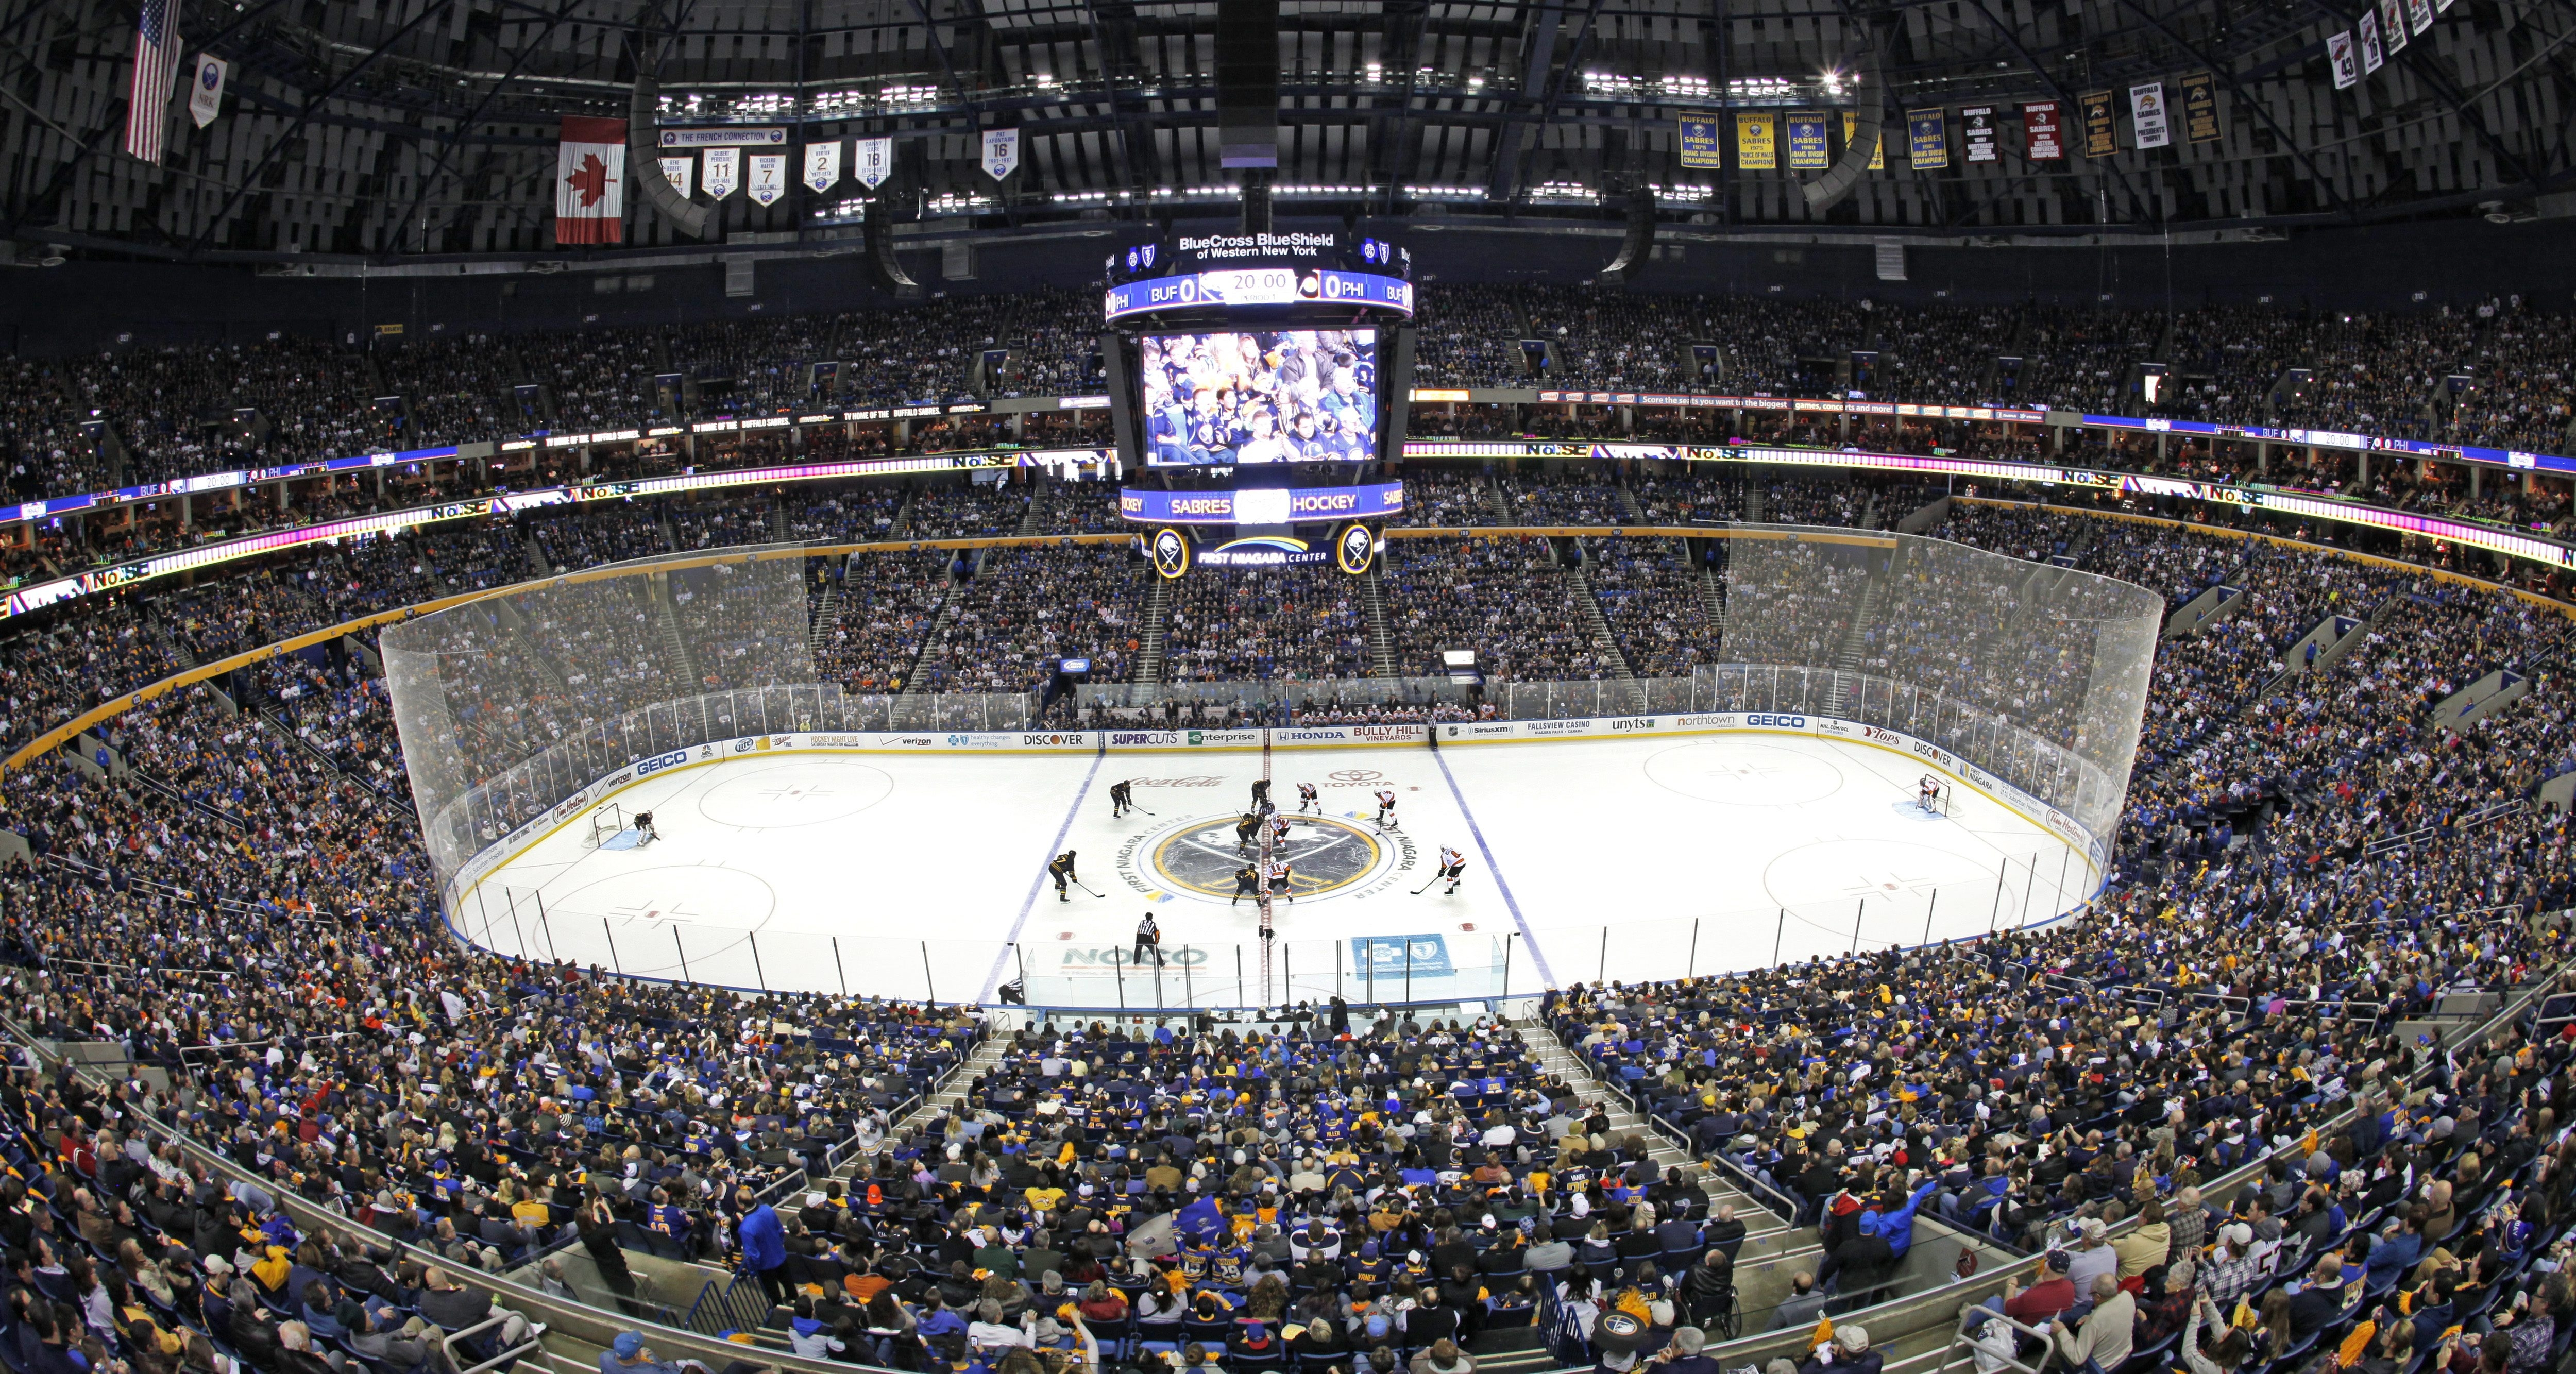 Canisius College, Niagara University and the Metro Atlantic Athletic Conference would serve as hosts for the Frozen Four games in First Niagara Center.